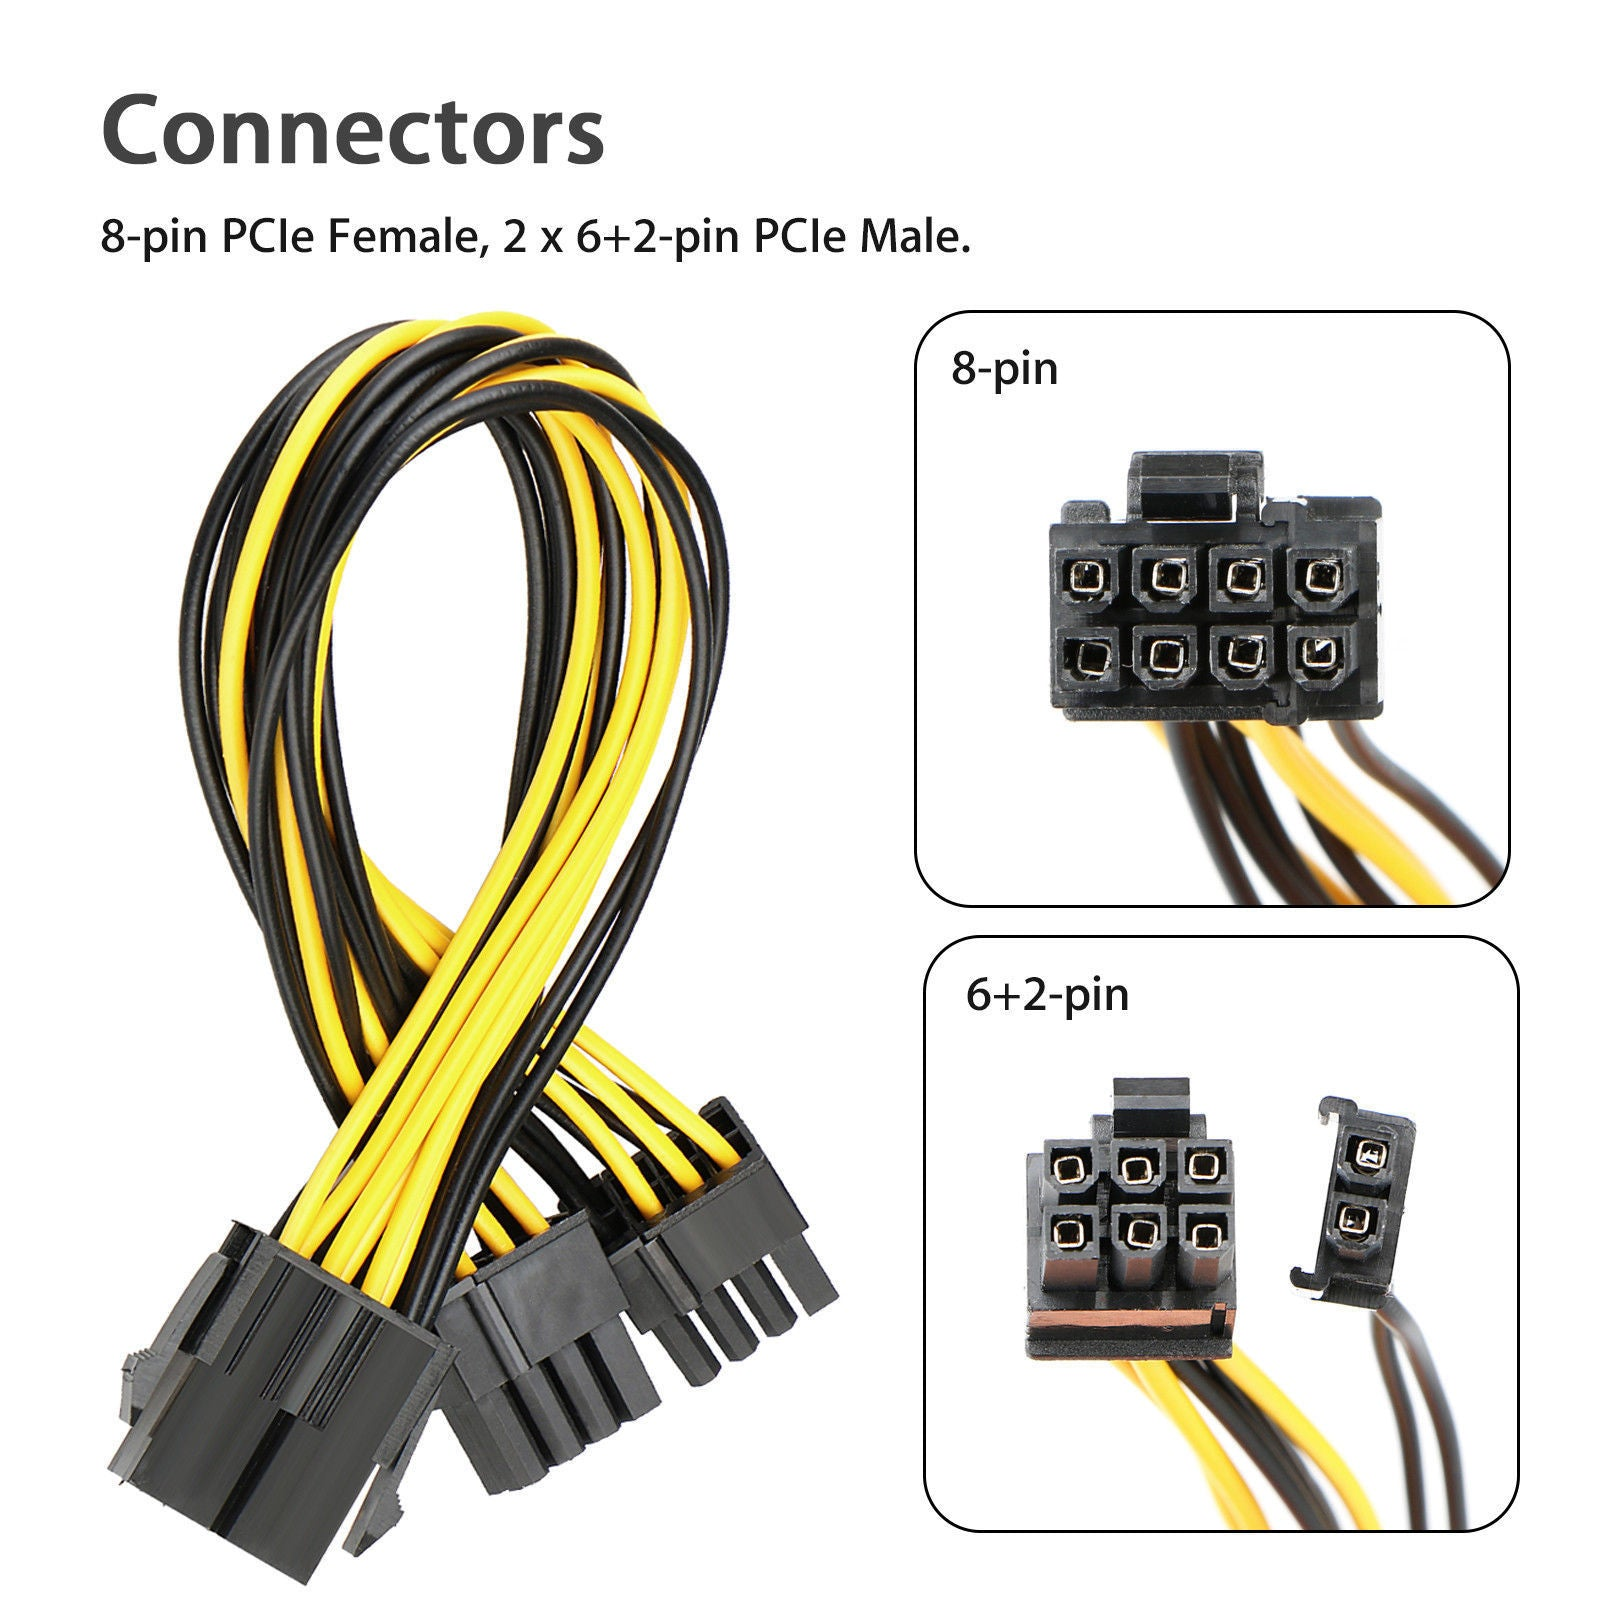 PCI-E 8-pin to 2x 8-pin GPU Graphics Card Power Splitter Cable PCIE PCI Express